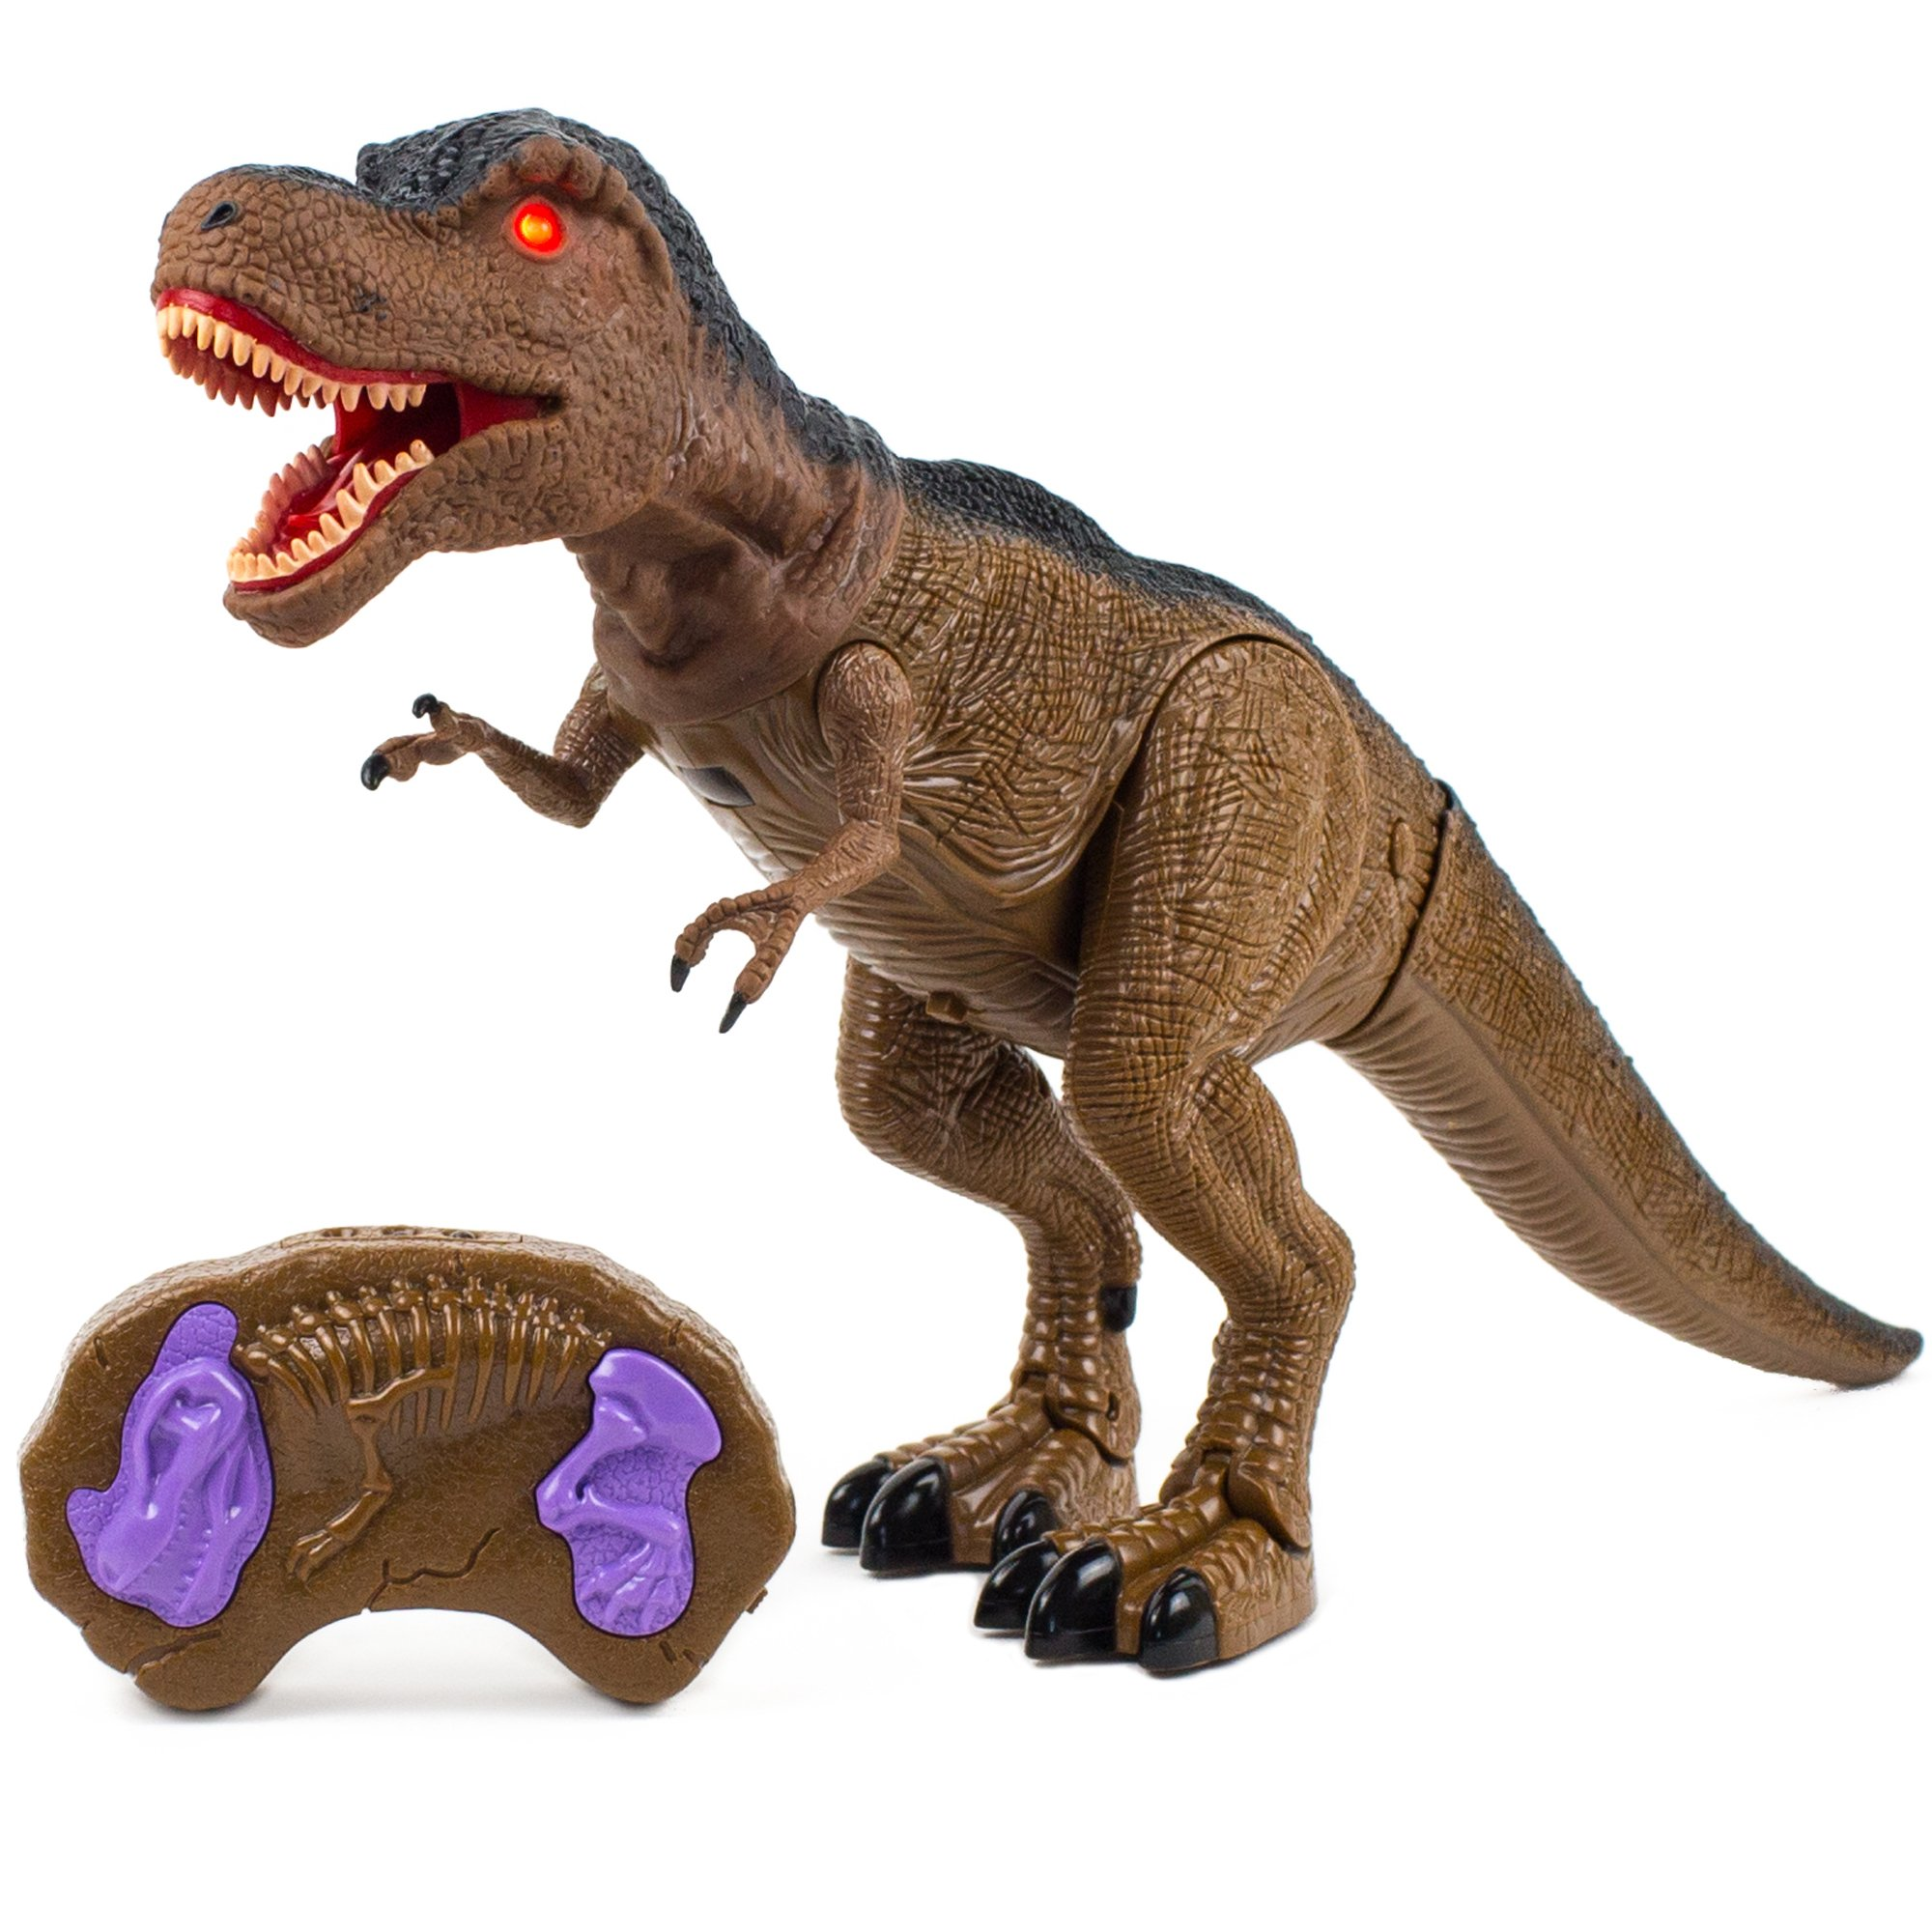 Toysery Jurassic World Dinosaur Toys with Light Up Eyes and Roaring Sound Walking Dinosaur Toy Set for 3-12 Year Boys and Girls - Perfect Remote Control Dinosaur Gifts for Birthdays by Toysery (Image #1)